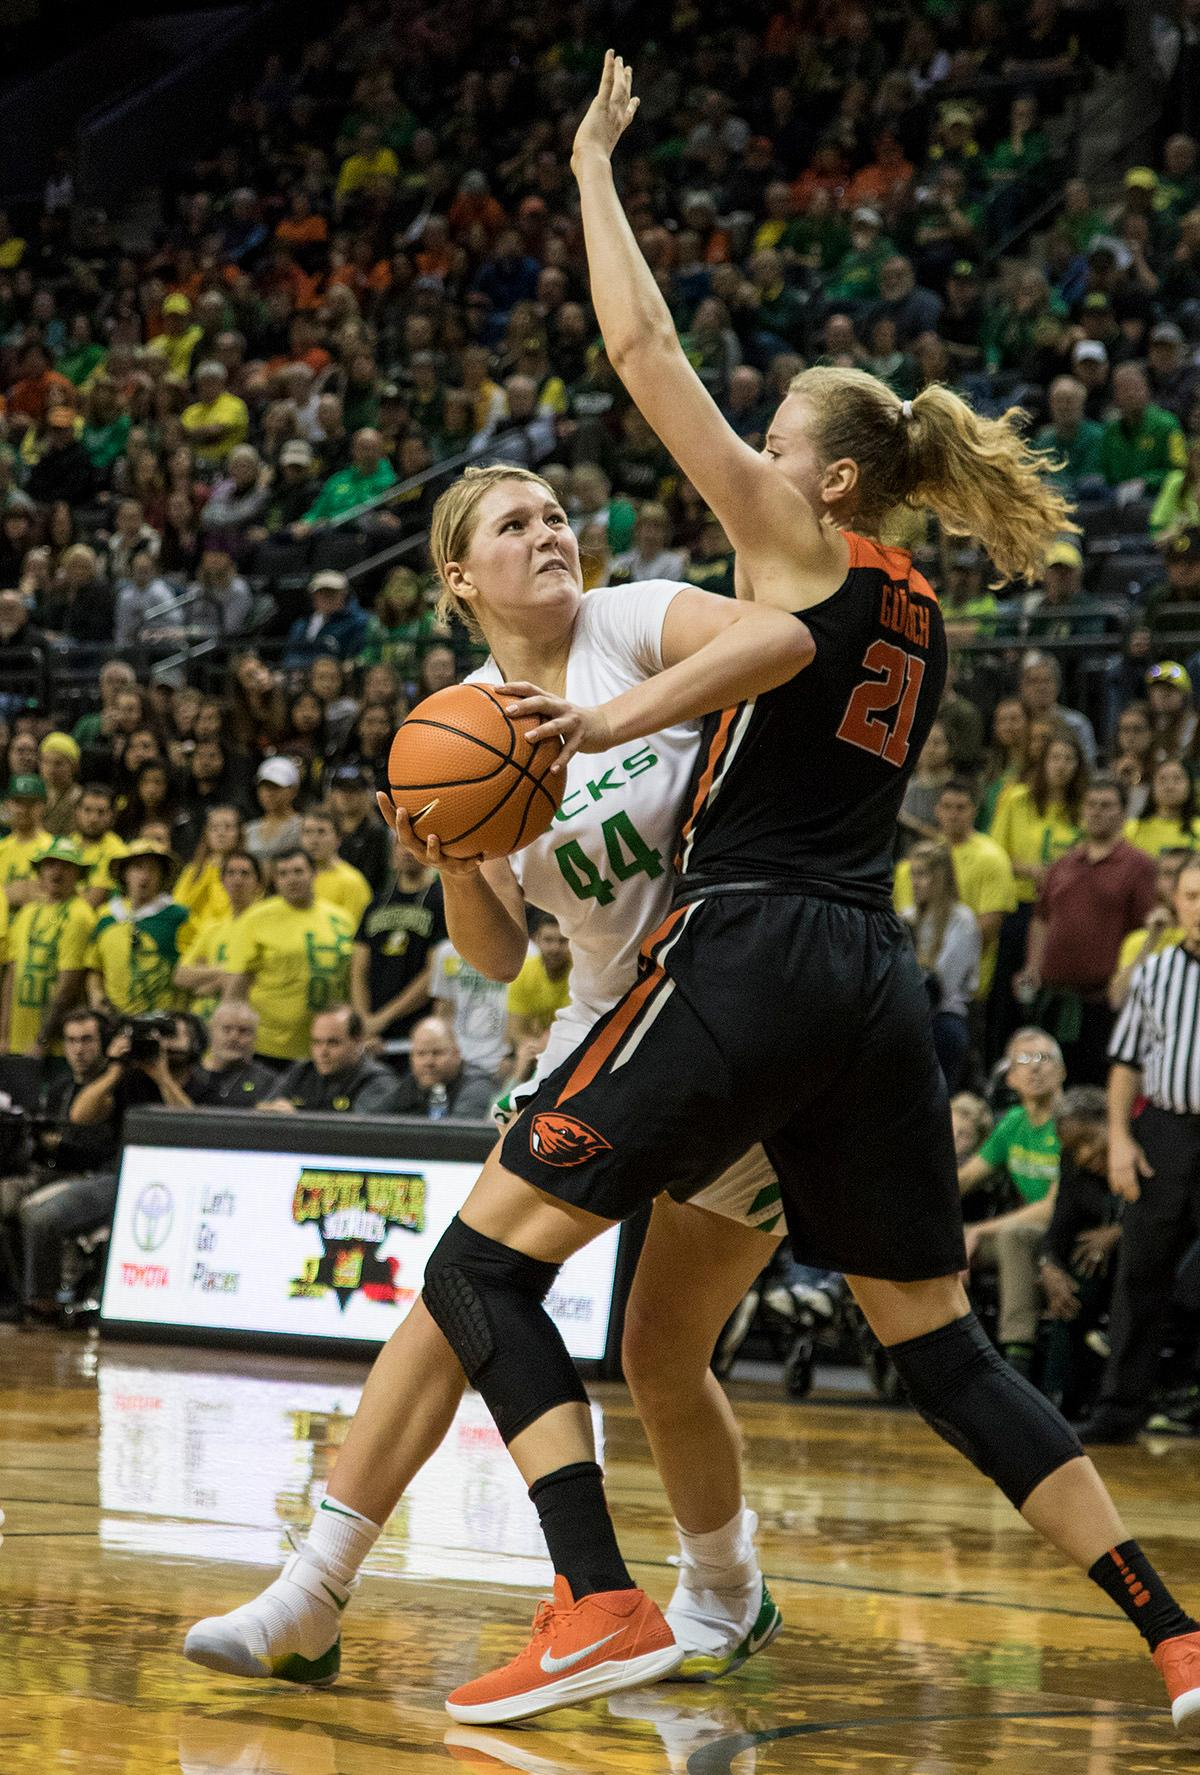 Oregon Ducks Mallory McGwire (#44) makes her way to the basket. The Oregon Ducks defeated the Oregon State Beavers 75-63 on Sunday afternoon in front of a crowd of 7,249 at Matthew Knight Arena. The Ducks and Beavers split the two game Civil War with the Beavers defeating the Ducks on Friday night in Corvallis. The Ducks had four players in double digits: Satou Sabally with 21 points, Maite Cazorla with 16, Sabrina Ionescu with 15, and Mallory McGwire with 14. The Ducks shot 48.4% from the floor compared to the Beavers 37.3%. The Ducks are now 7-1 in conference play. Photo by Rhianna Gelhart, Oregon News Lab